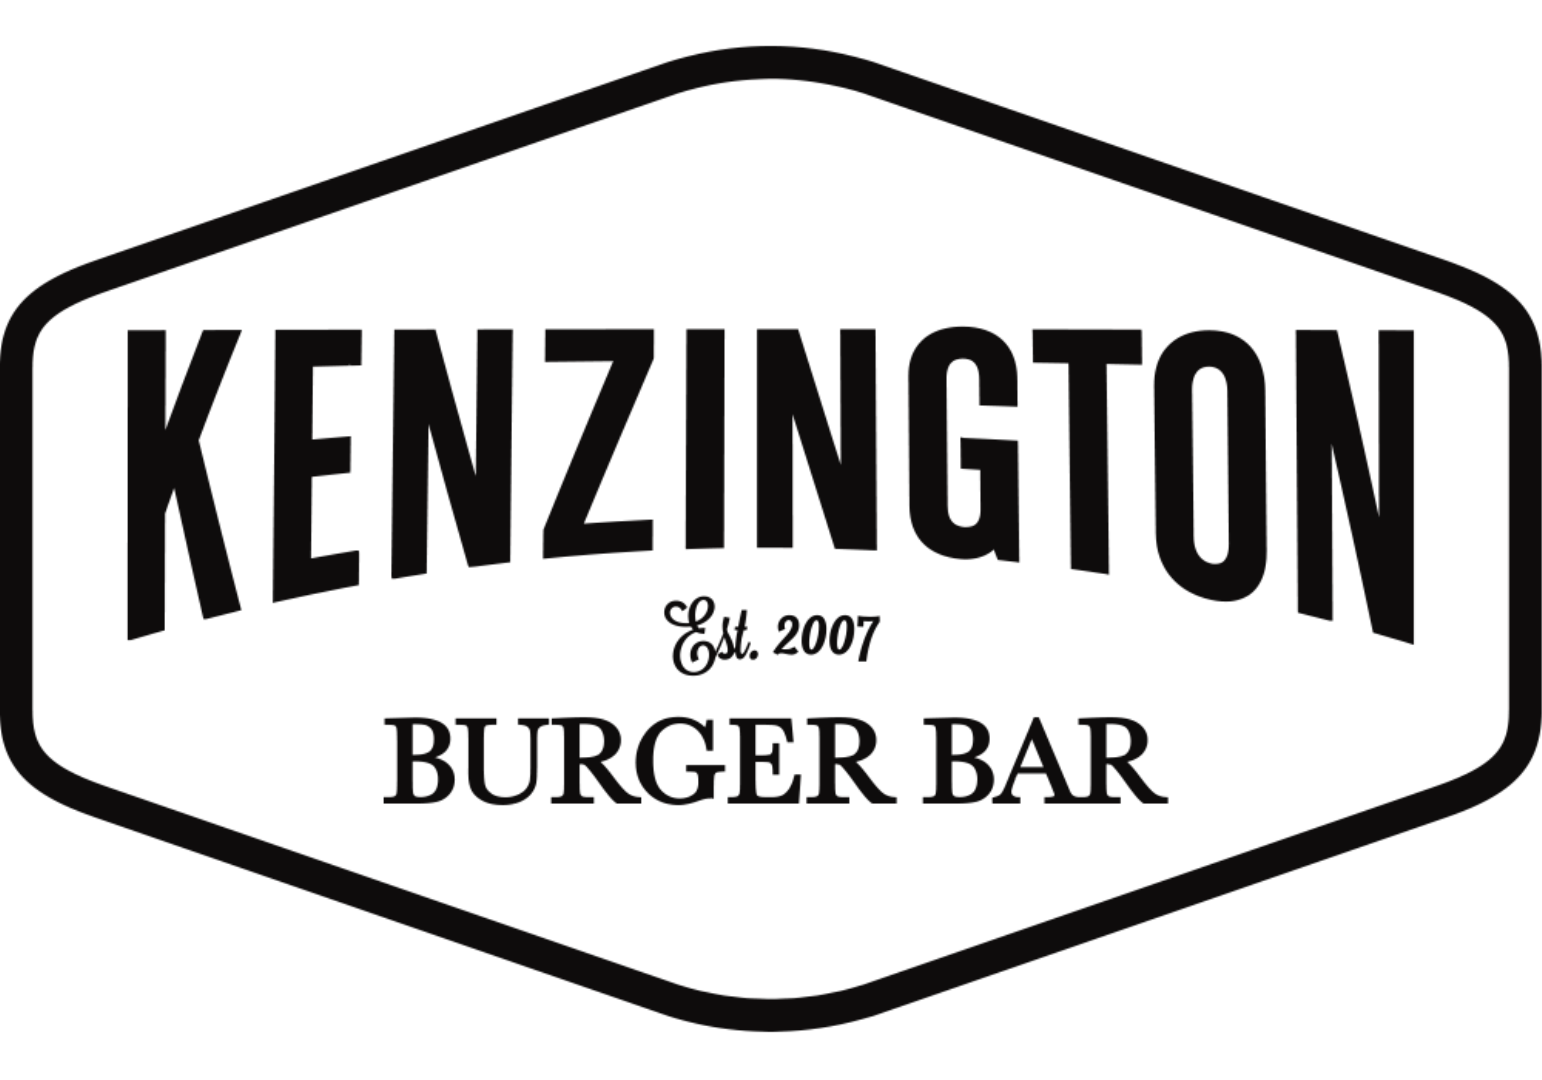 Kenzington Burger Bar - Bradford Restaurant - Picture